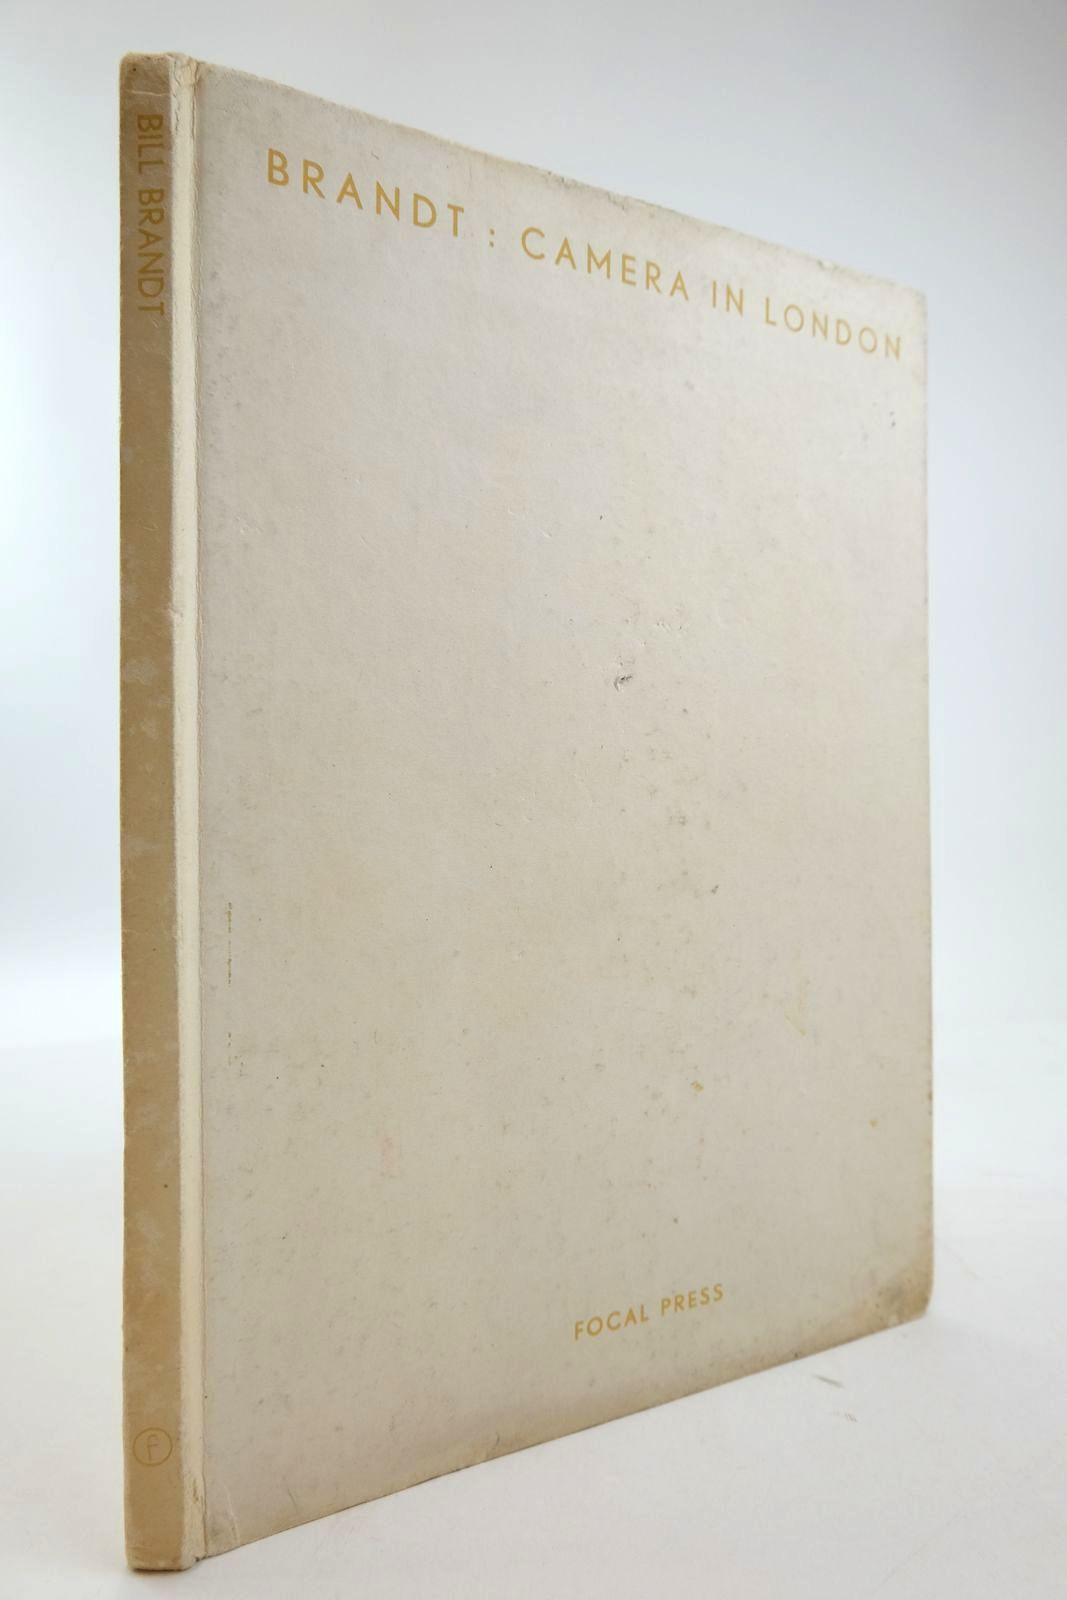 Photo of CAMERA IN LONDON written by Brandt, Bill published by Focal Press (STOCK CODE: 2134156)  for sale by Stella & Rose's Books